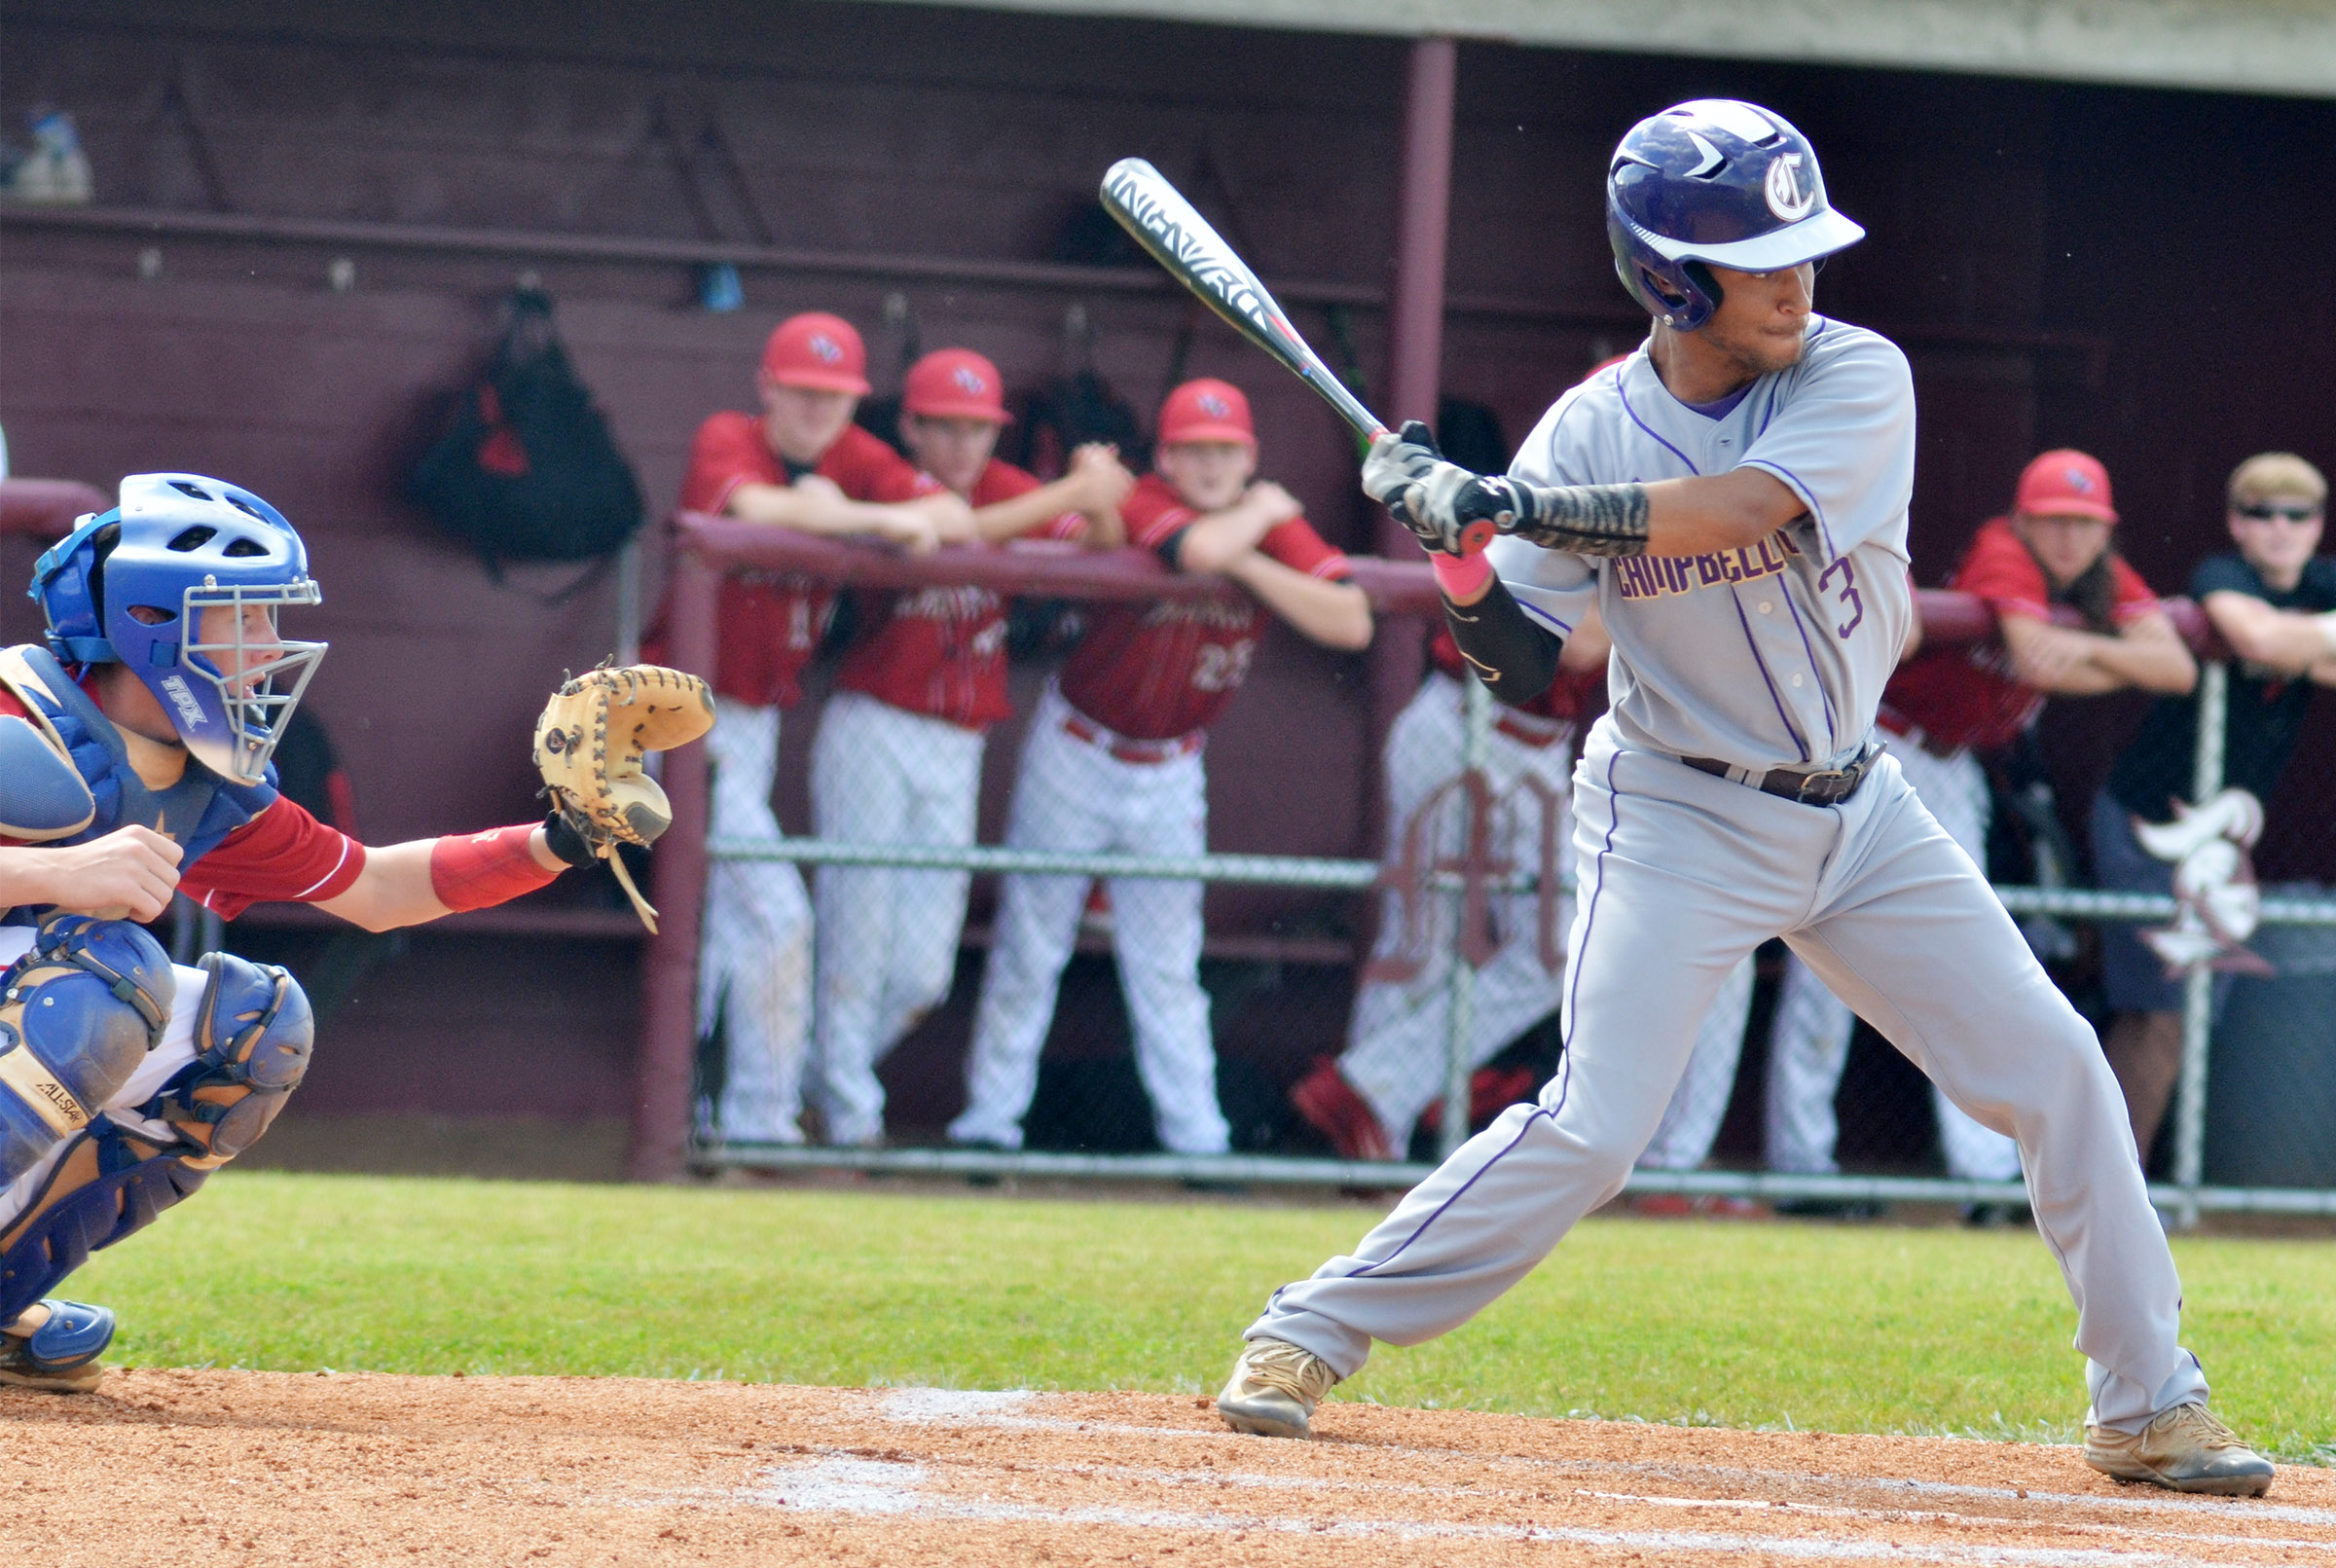 CHS junior Ethan Lay bats.